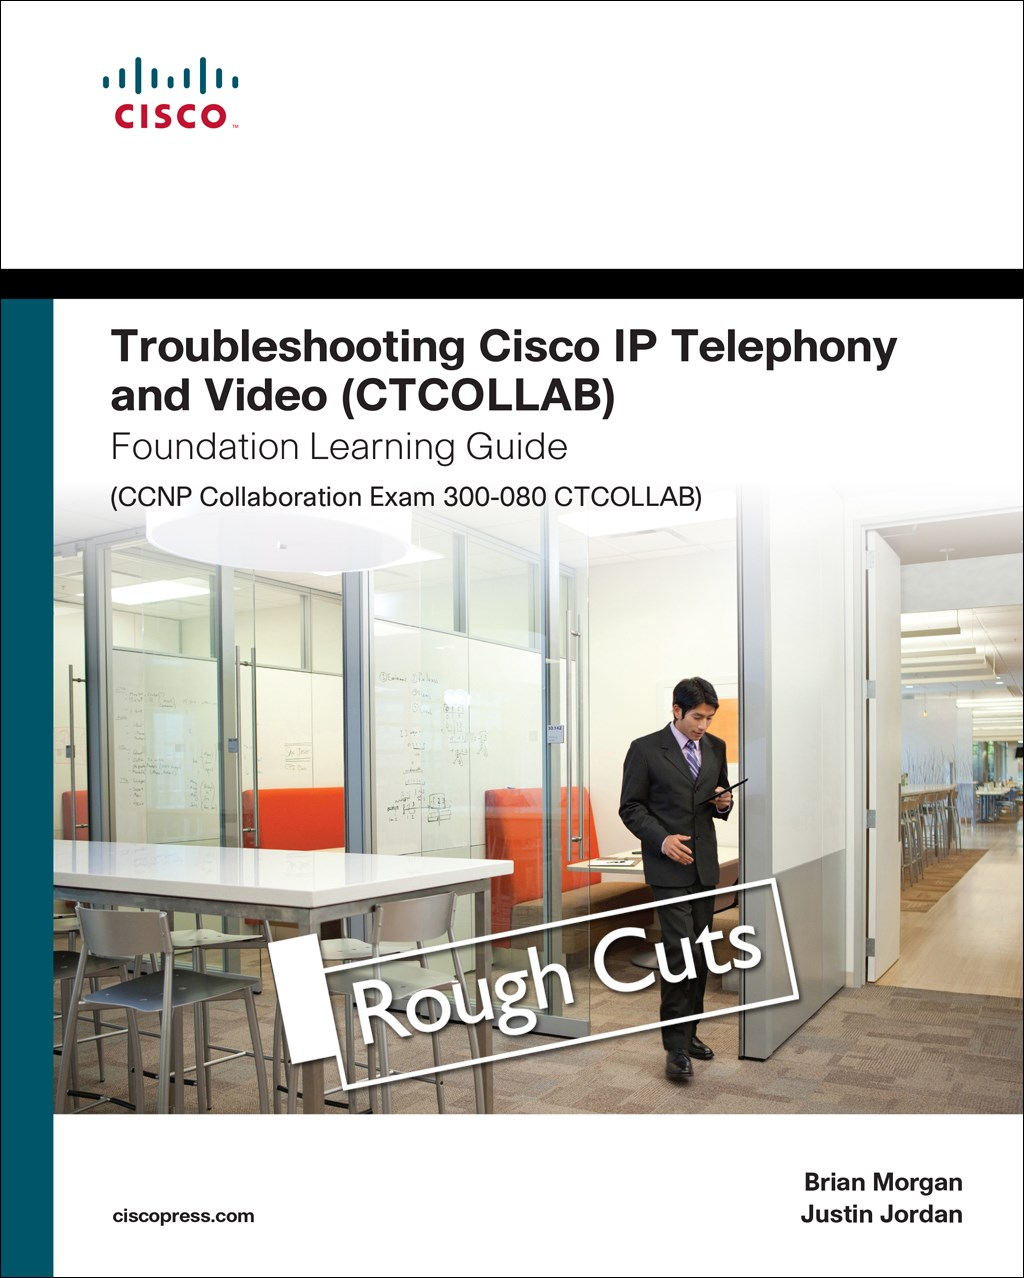 Troubleshooting Cisco IP Telephony and Video (CTCOLLAB) Foundation Learning Guide (CCNP Collaboration Exam 300-080 CTCOLLAB), Rough Cuts